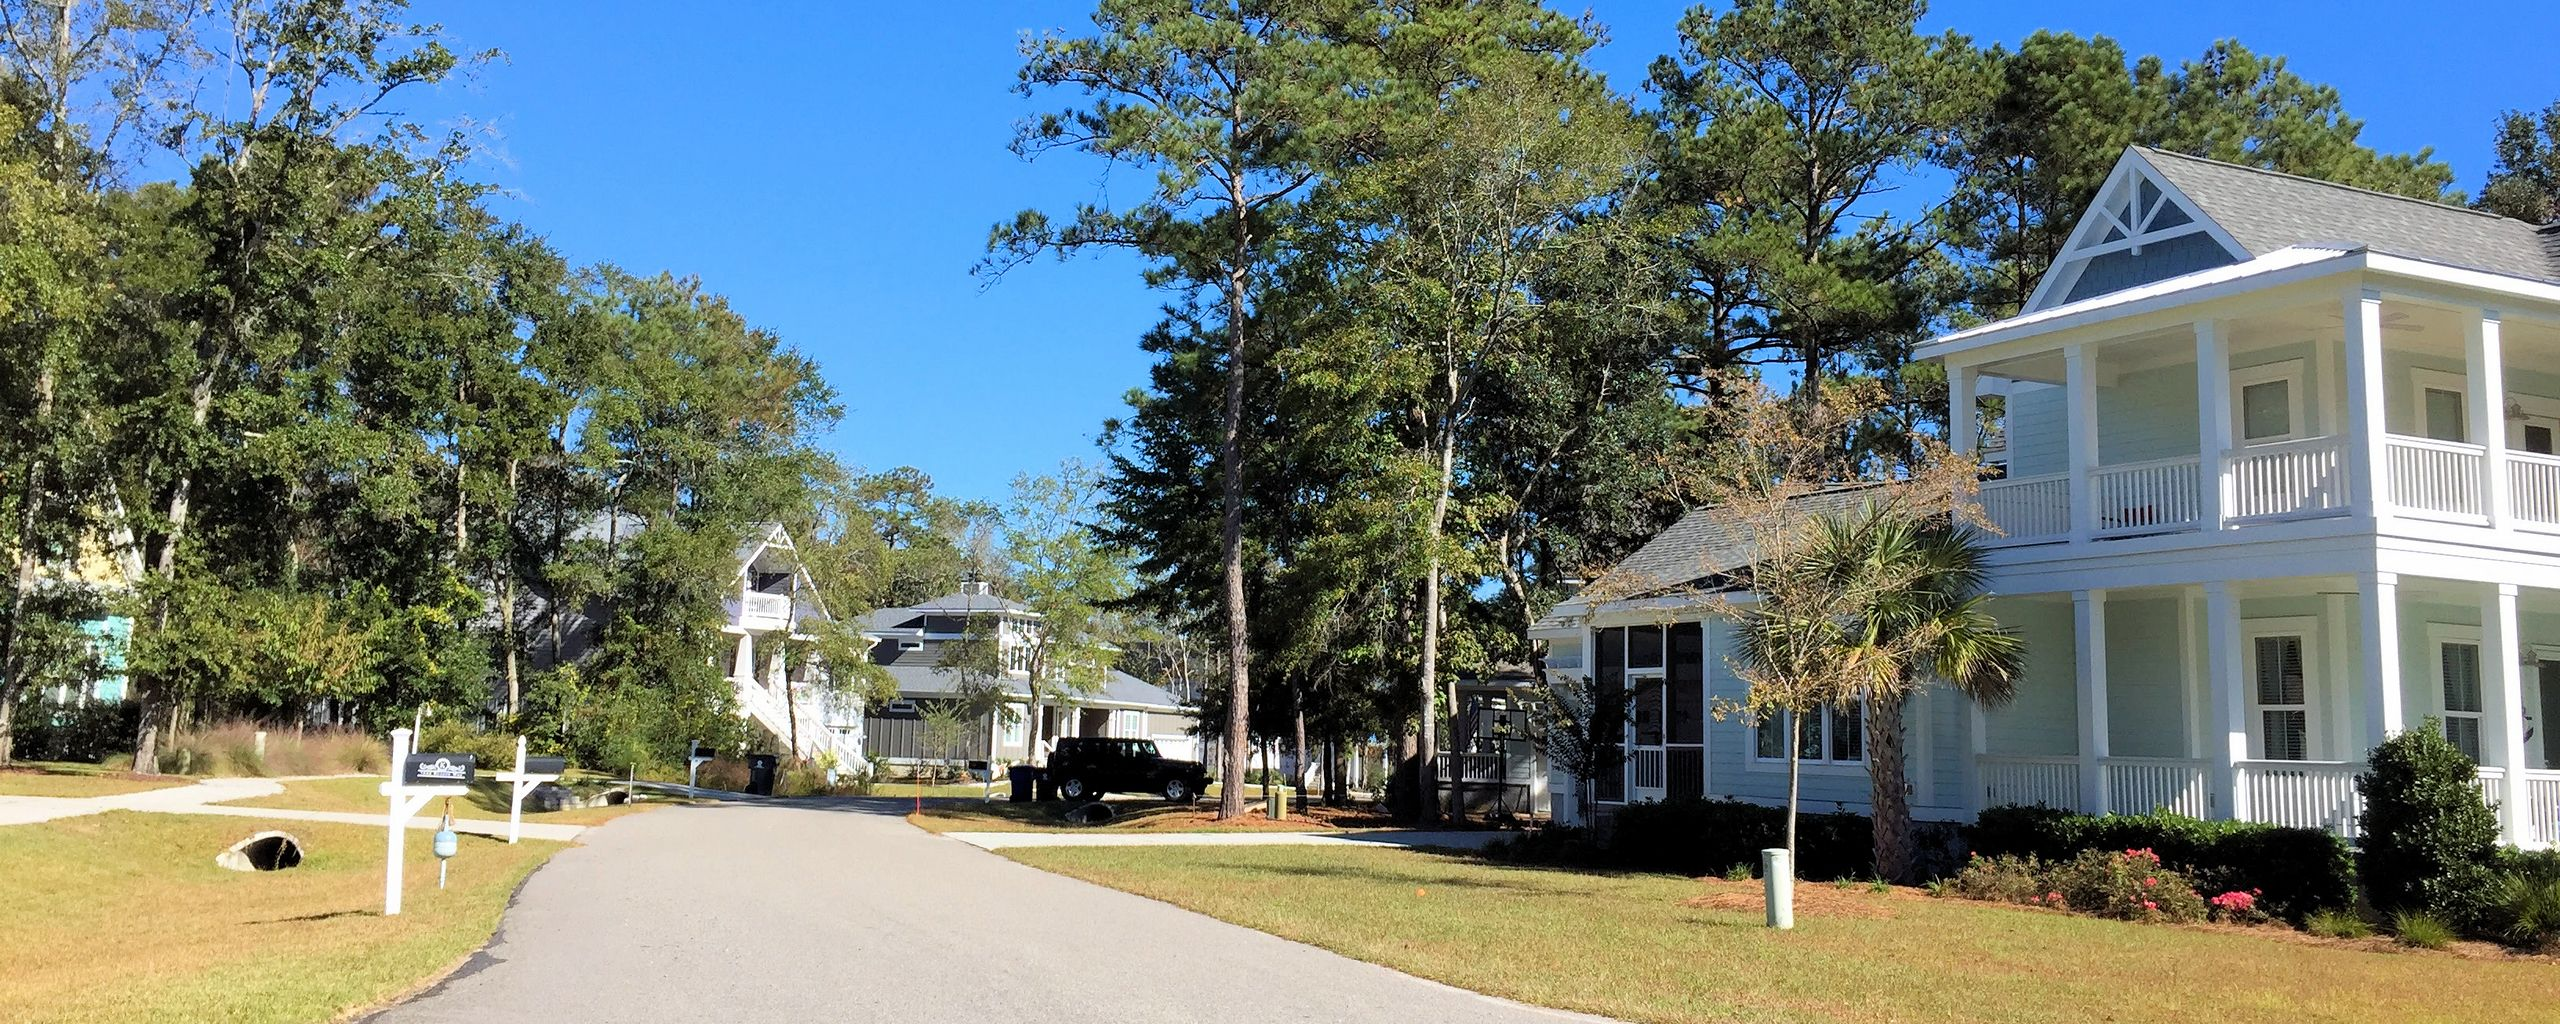 Homes For Sale In Masonboro Forest